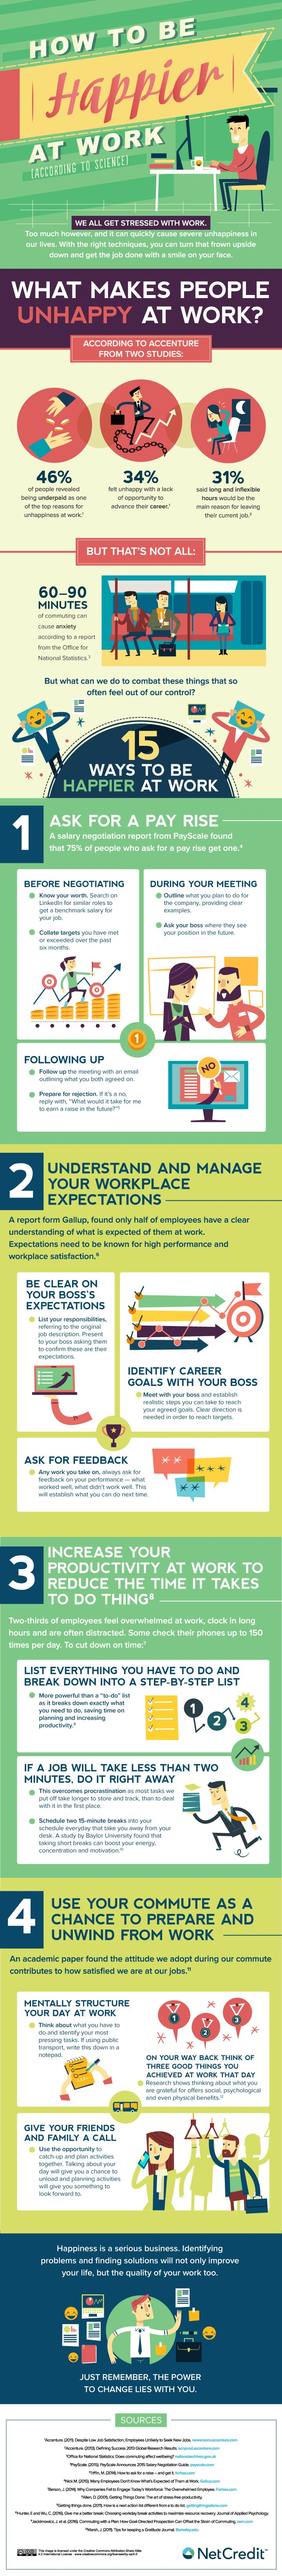 How To Be Happier At Work #Infographic #HowTo #Workplace